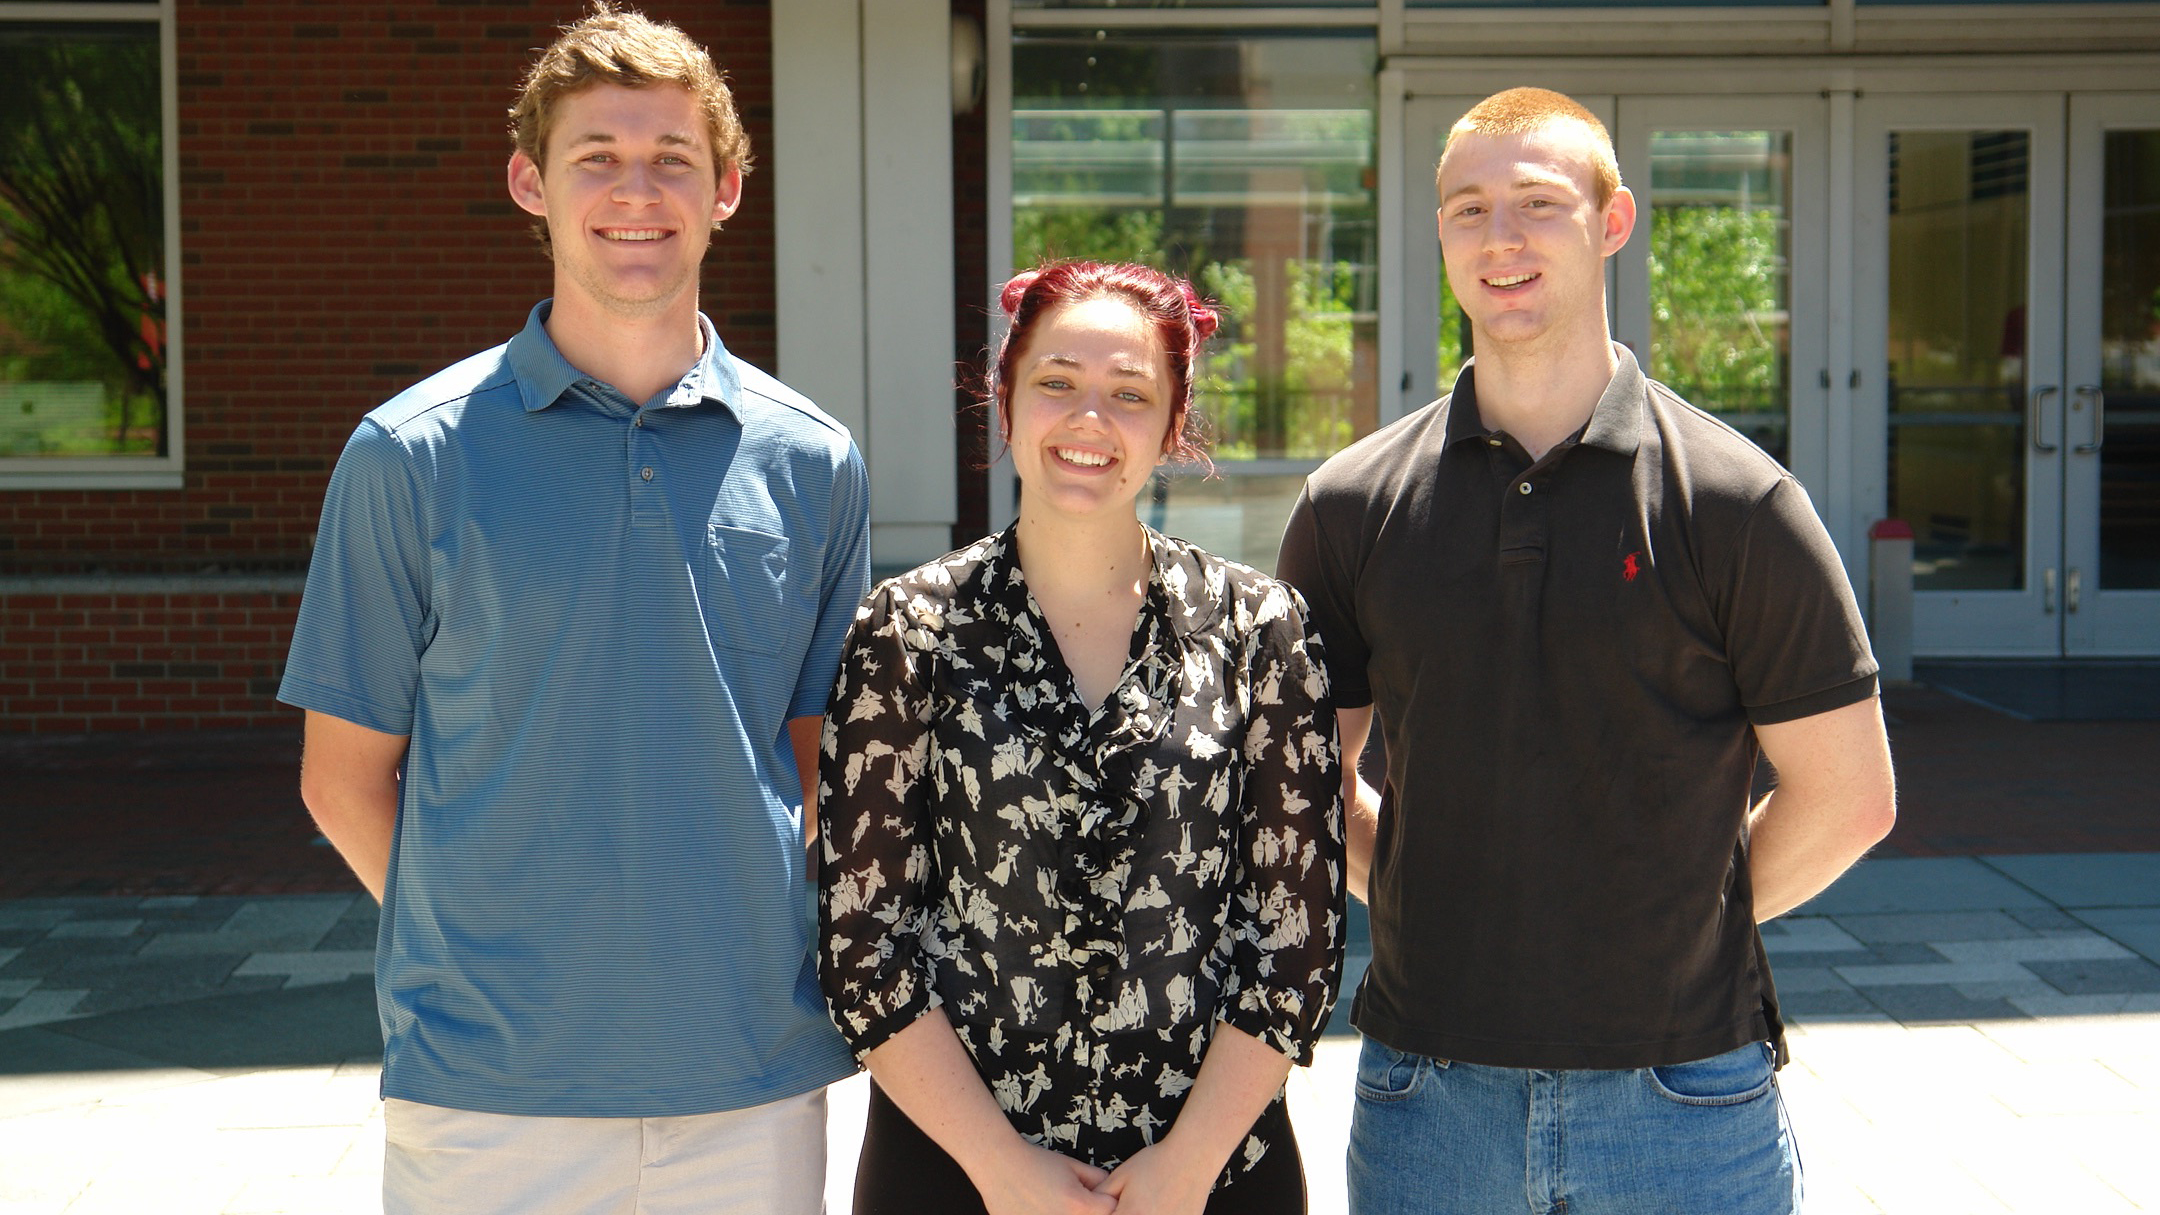 Davis Atkinson, Jaye Sudweeks and Graham Pash, Outstanding Winners in the Mathematical Contest in Modeling